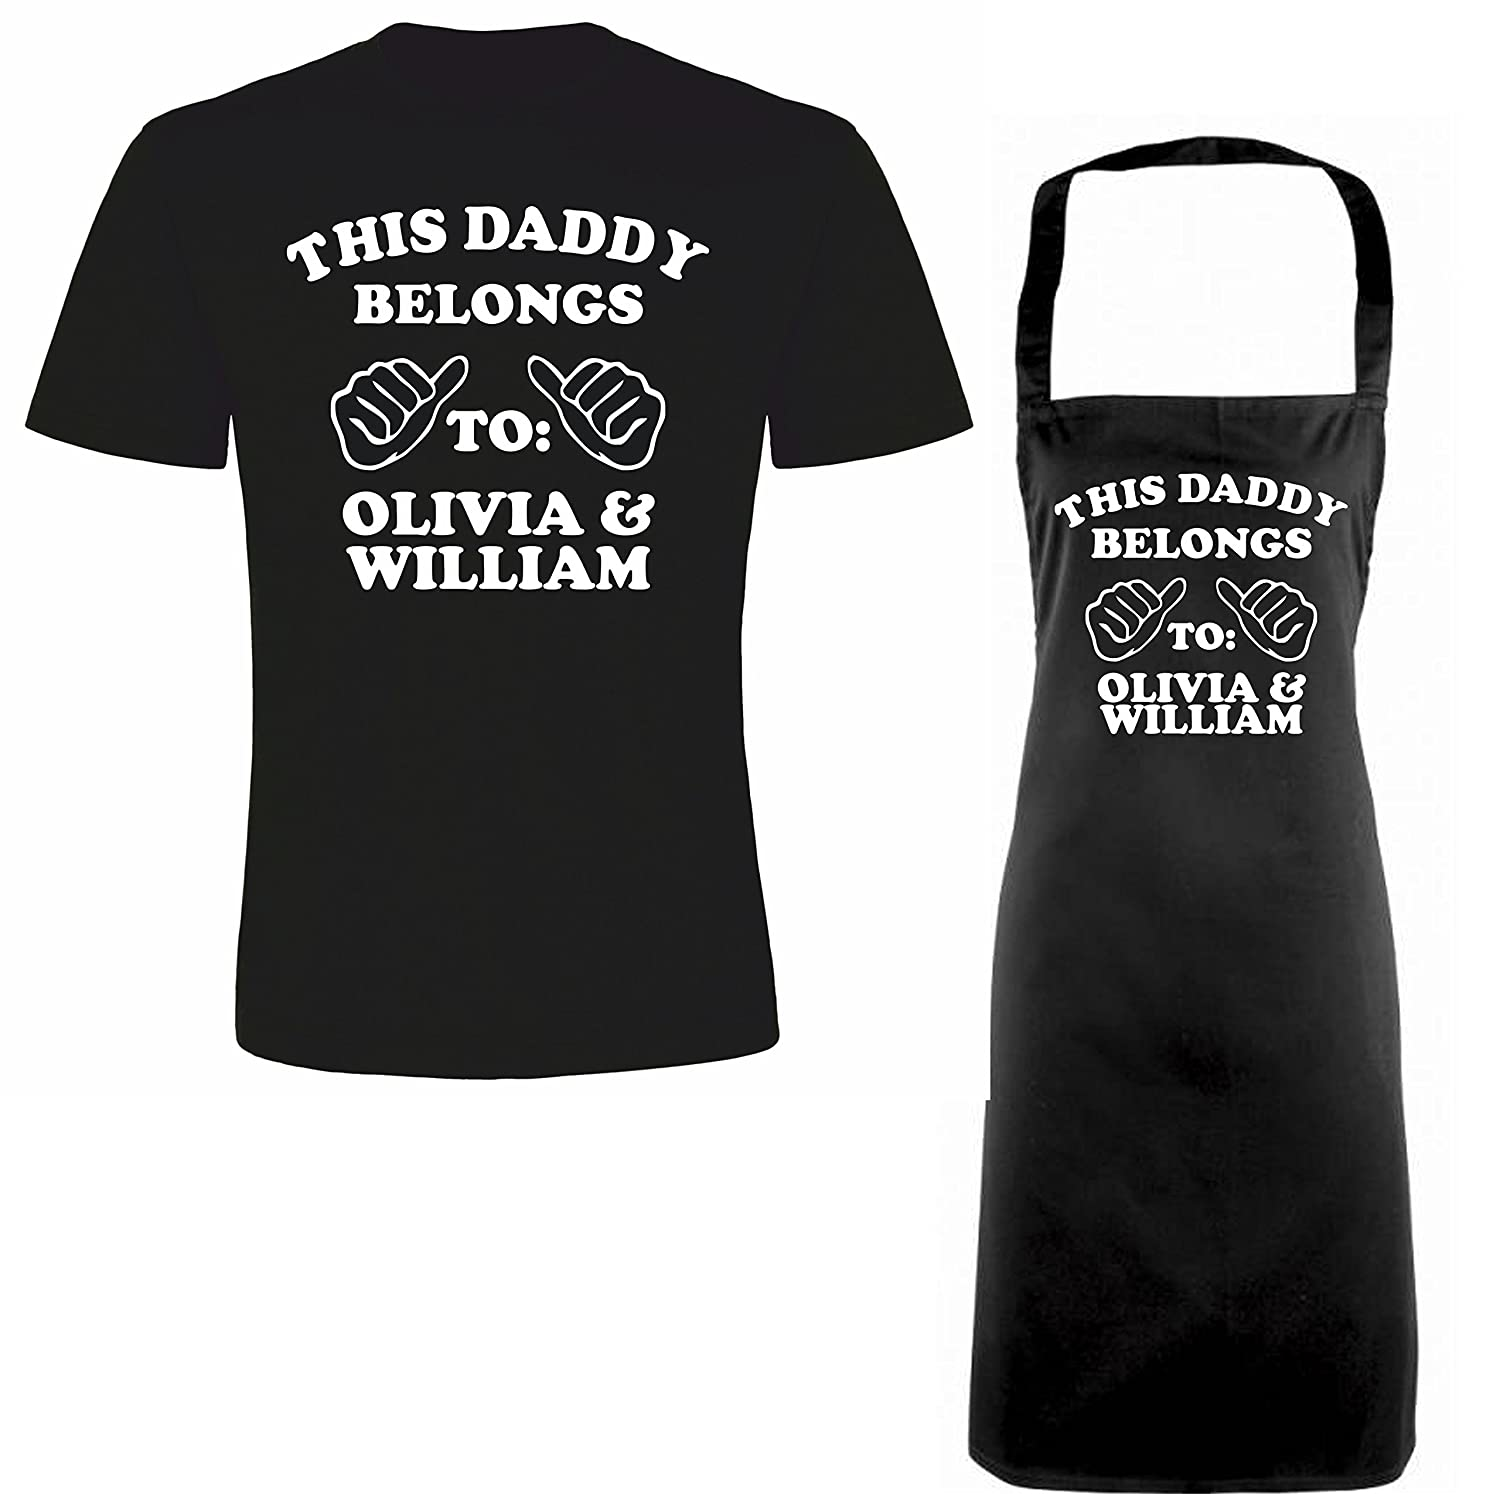 'THIS DADDY BELONGS TO:.....' Personalised Matching Fathers Day T-shirt & Apron Gift Set iin Black